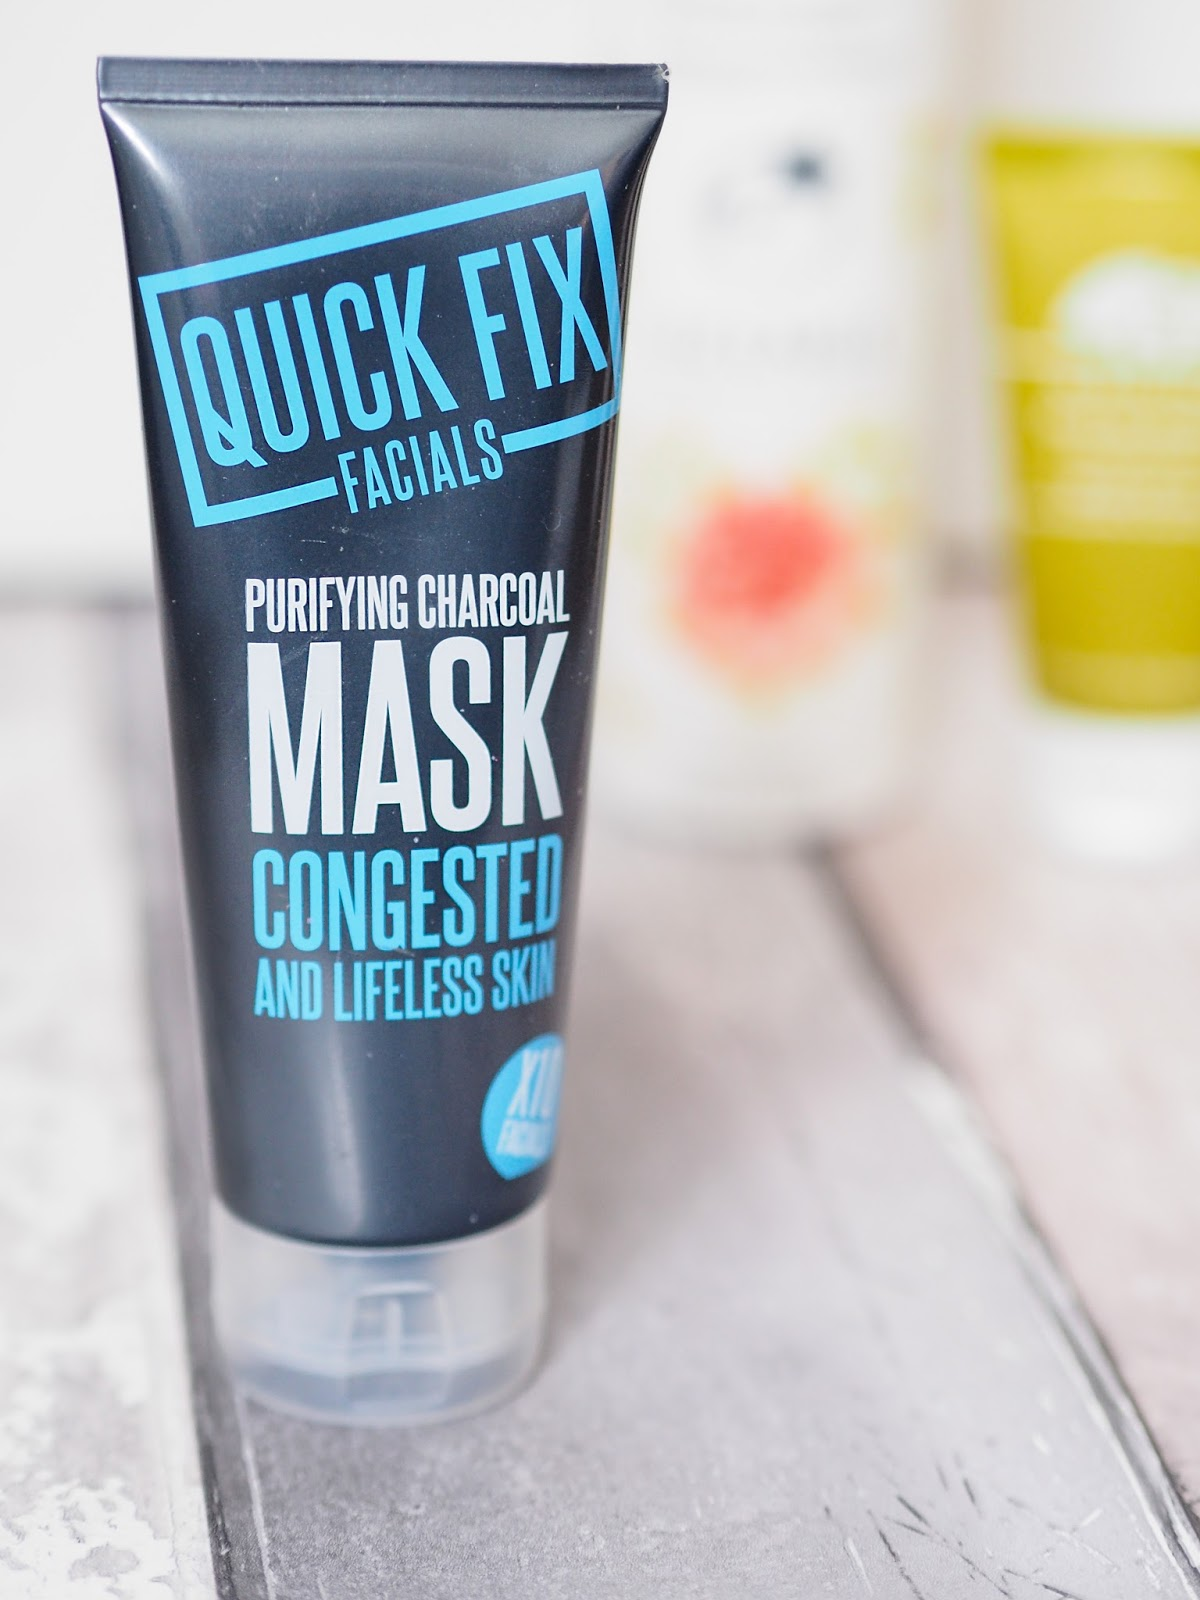 The Skincare Shelf Quick Fix Facials Purifying Charcoal Mask